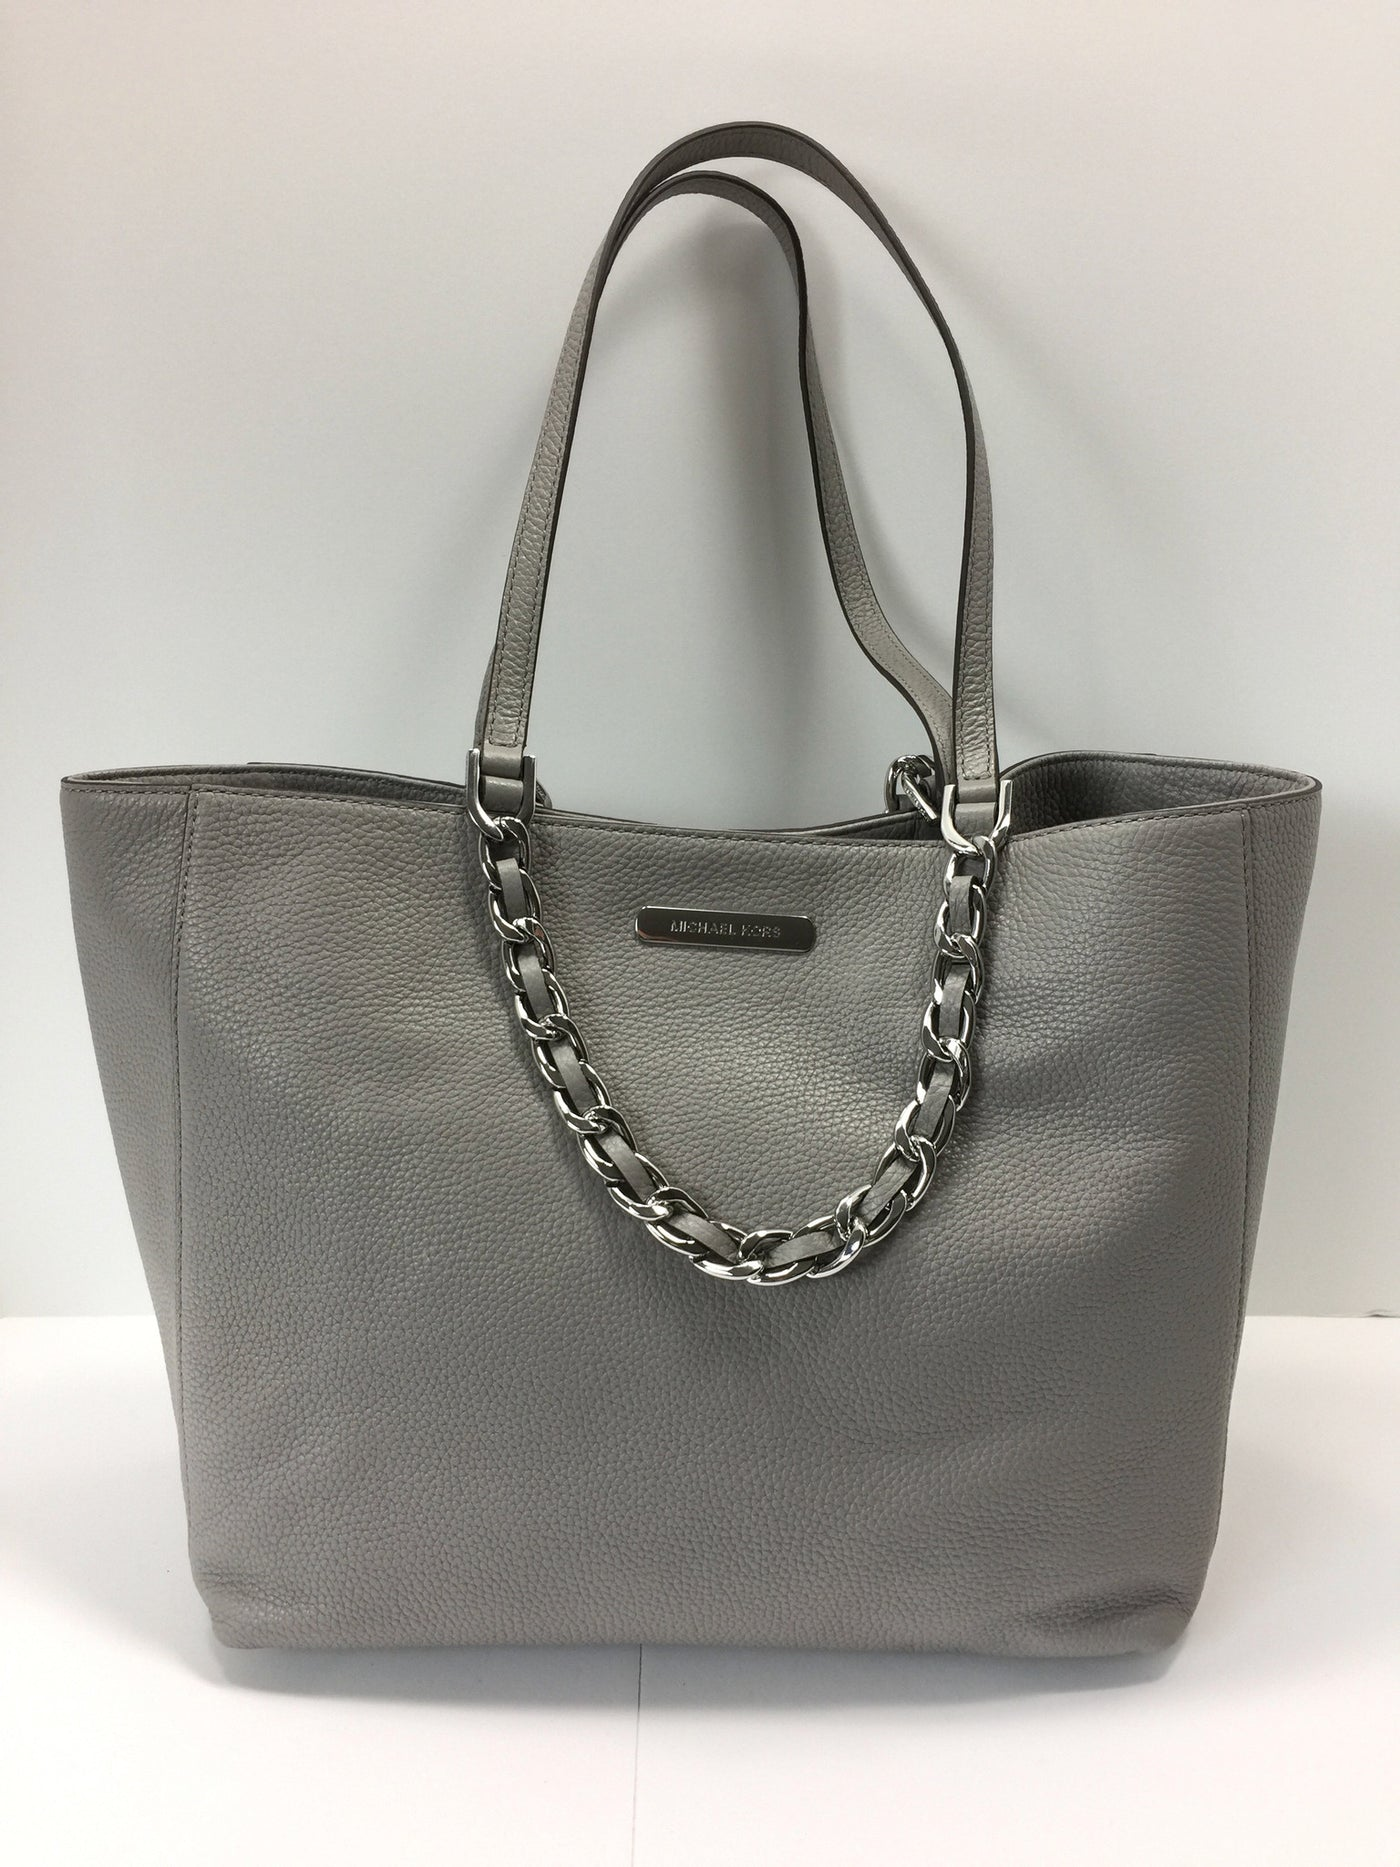 Kors Large Tote Eastwest Harper Michael nwk80OP